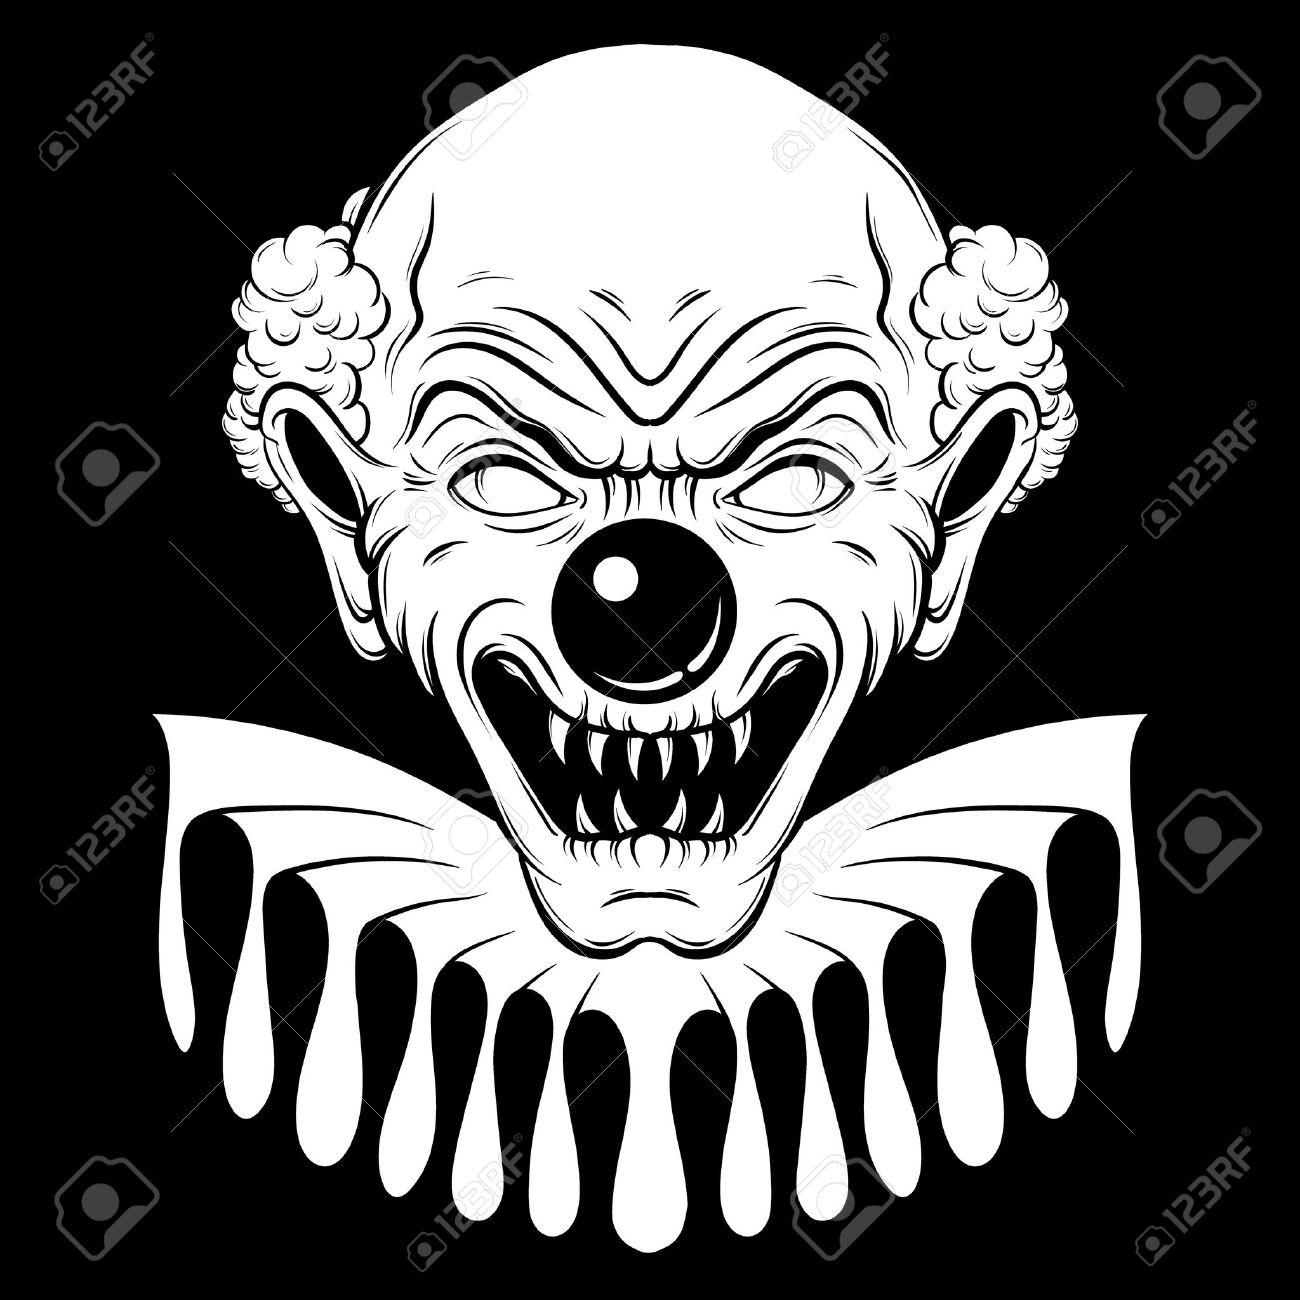 1300x1300 Vector Hand Drawn Illustration Of Angry Clown. Tattoo Artwork